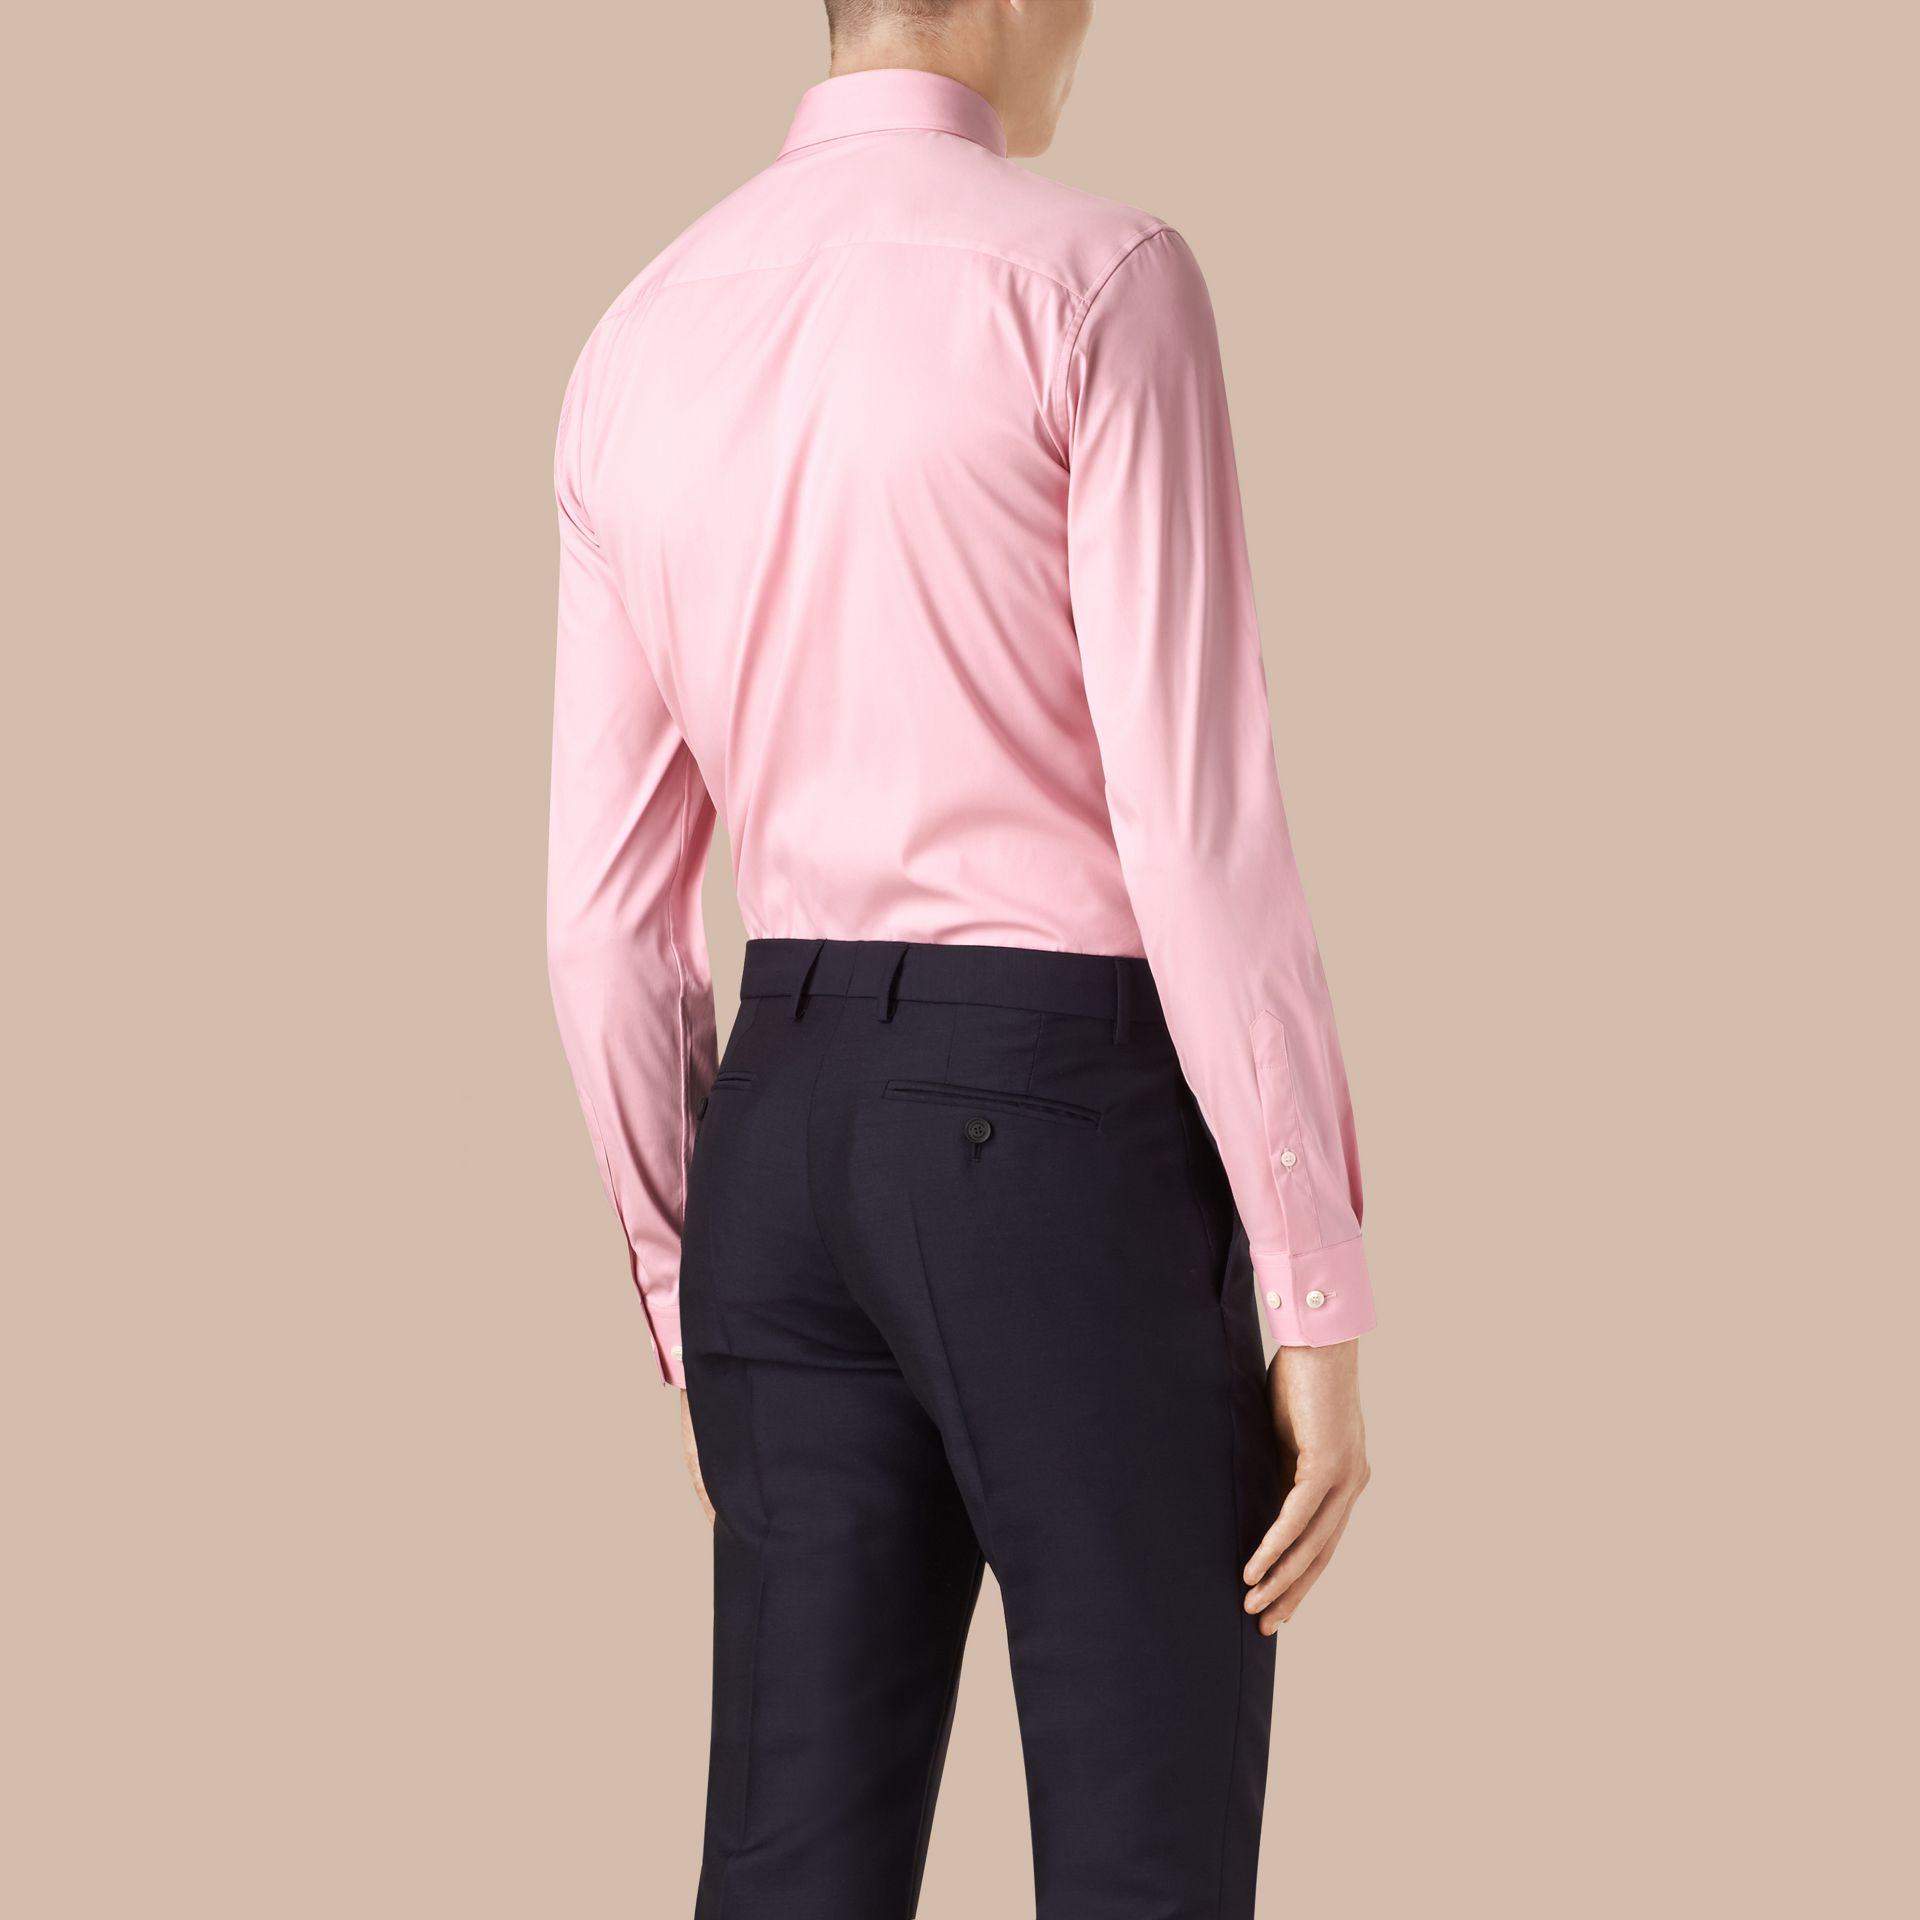 City pink Slim Fit Stretch Cotton Shirt City Pink - gallery image 2